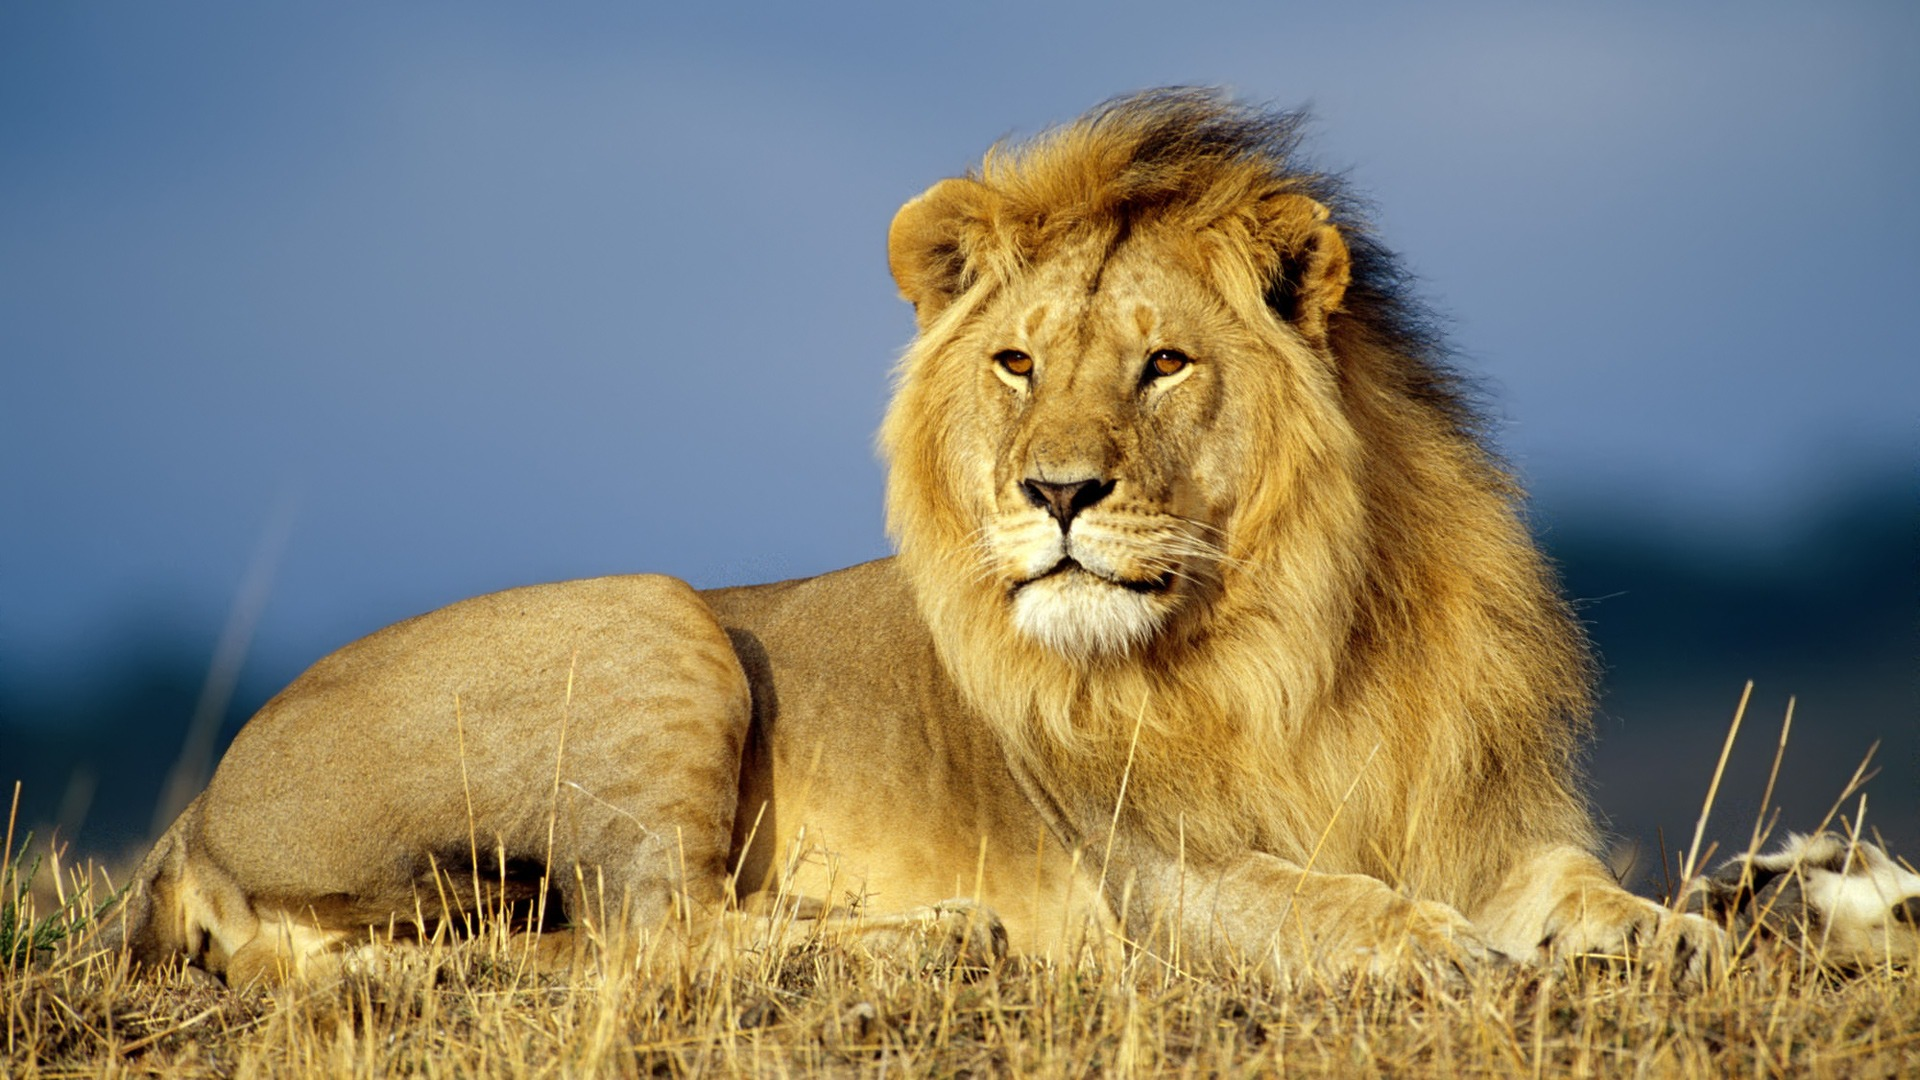 african lion wallpaper big cats animals wallpapers in jpg format for